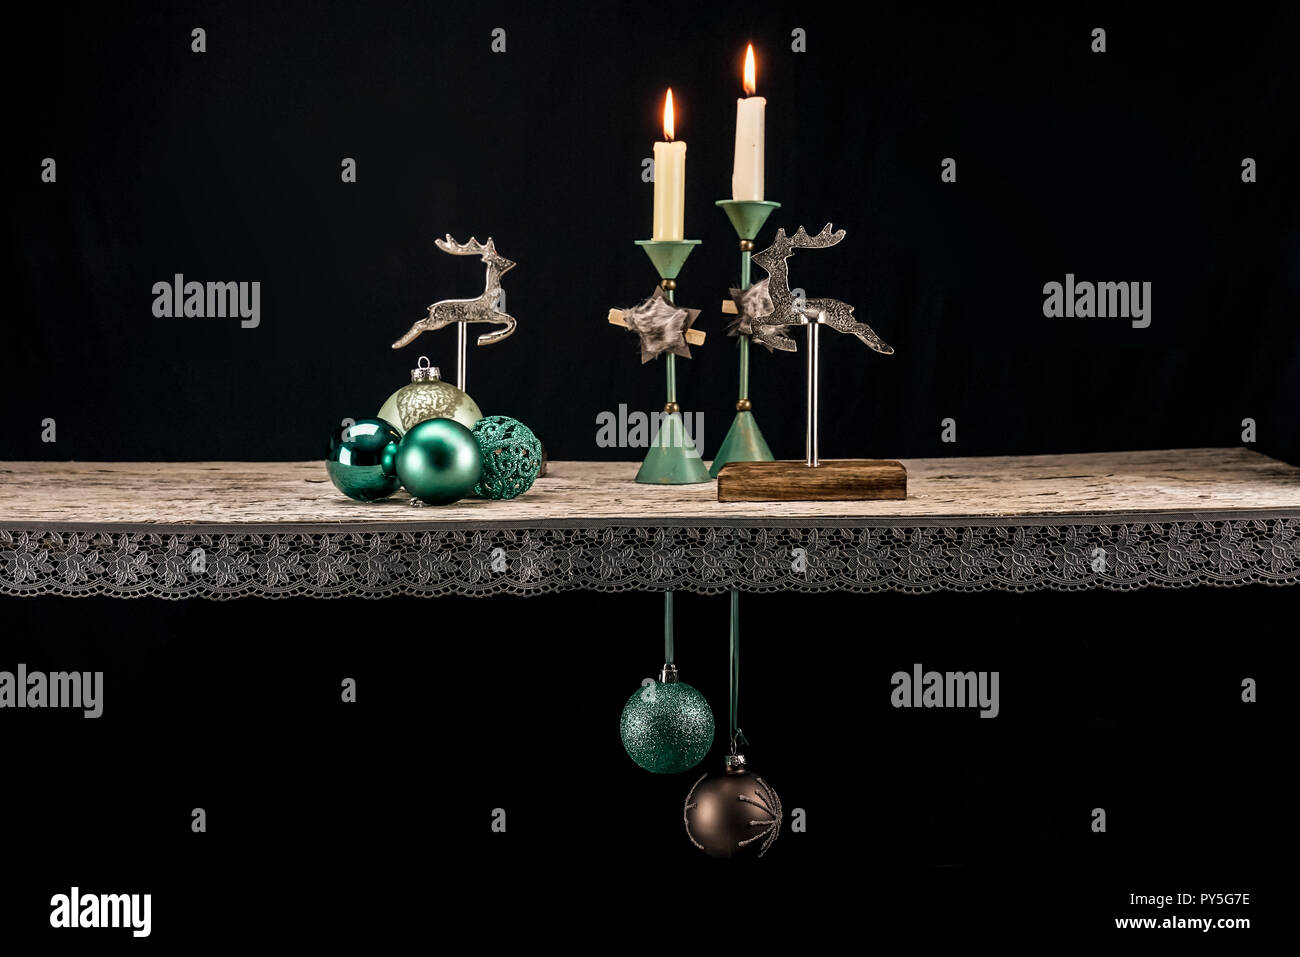 Christmas decoration elements in warm turquoise tones against a dark background. In addition to turquoise, dark brown, wood and old silver create a Ch Stock Photo